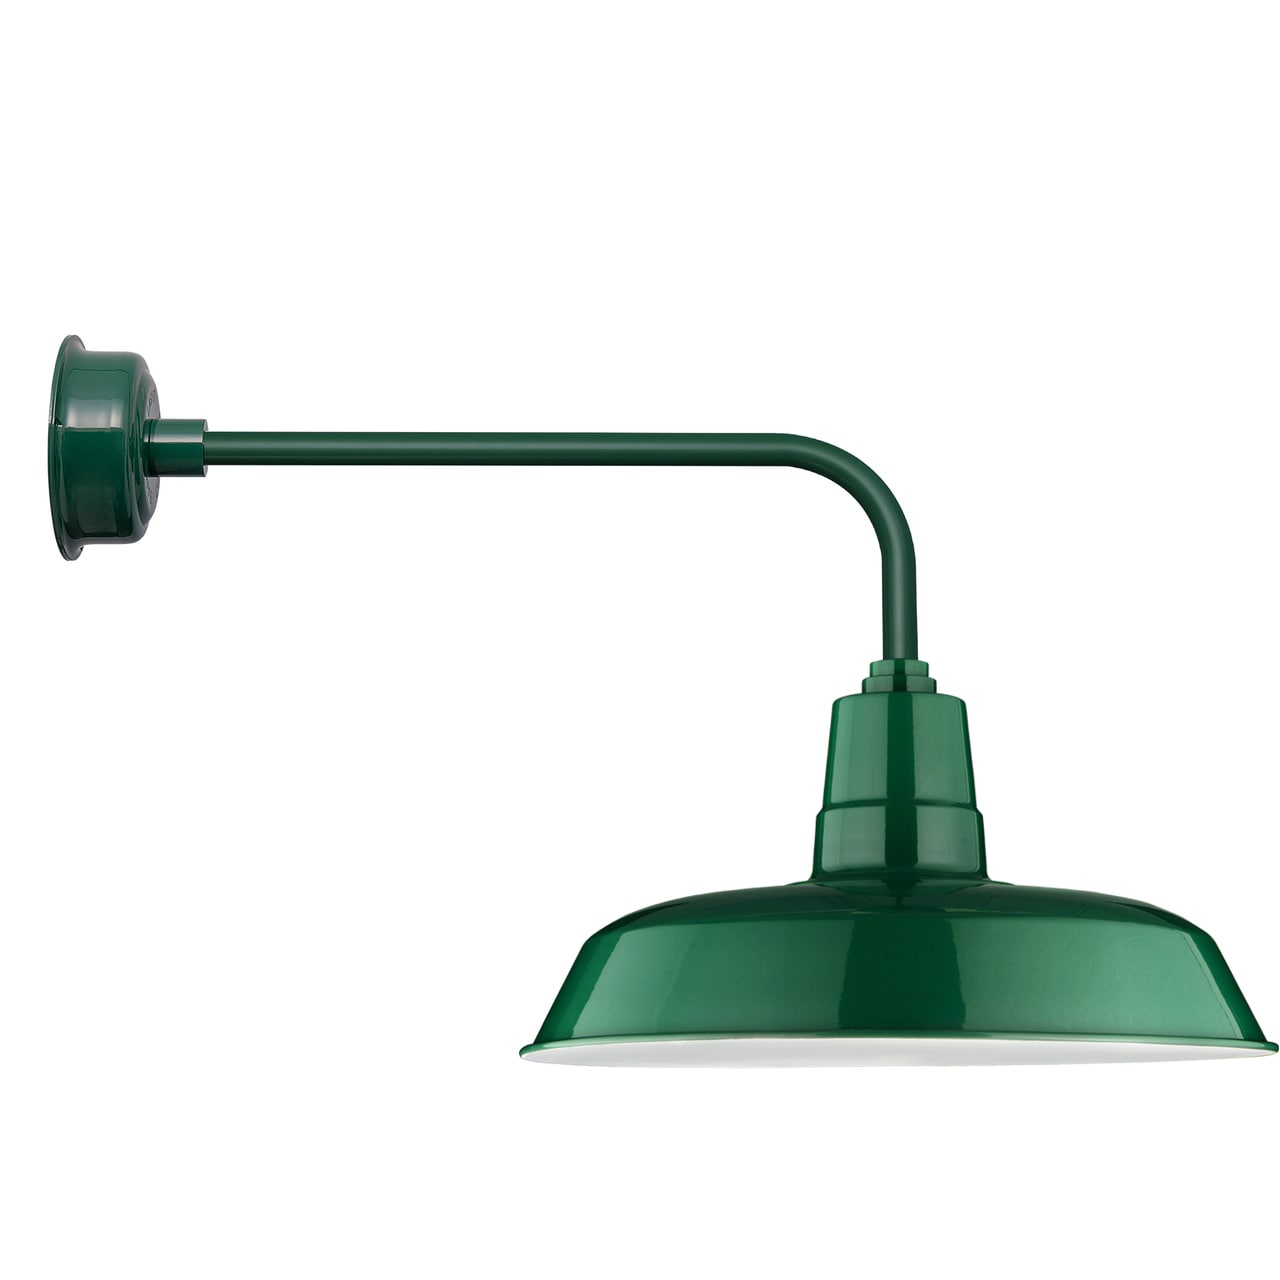 14 Calla LED Sign Light with Traditional Arm in Vintage Green